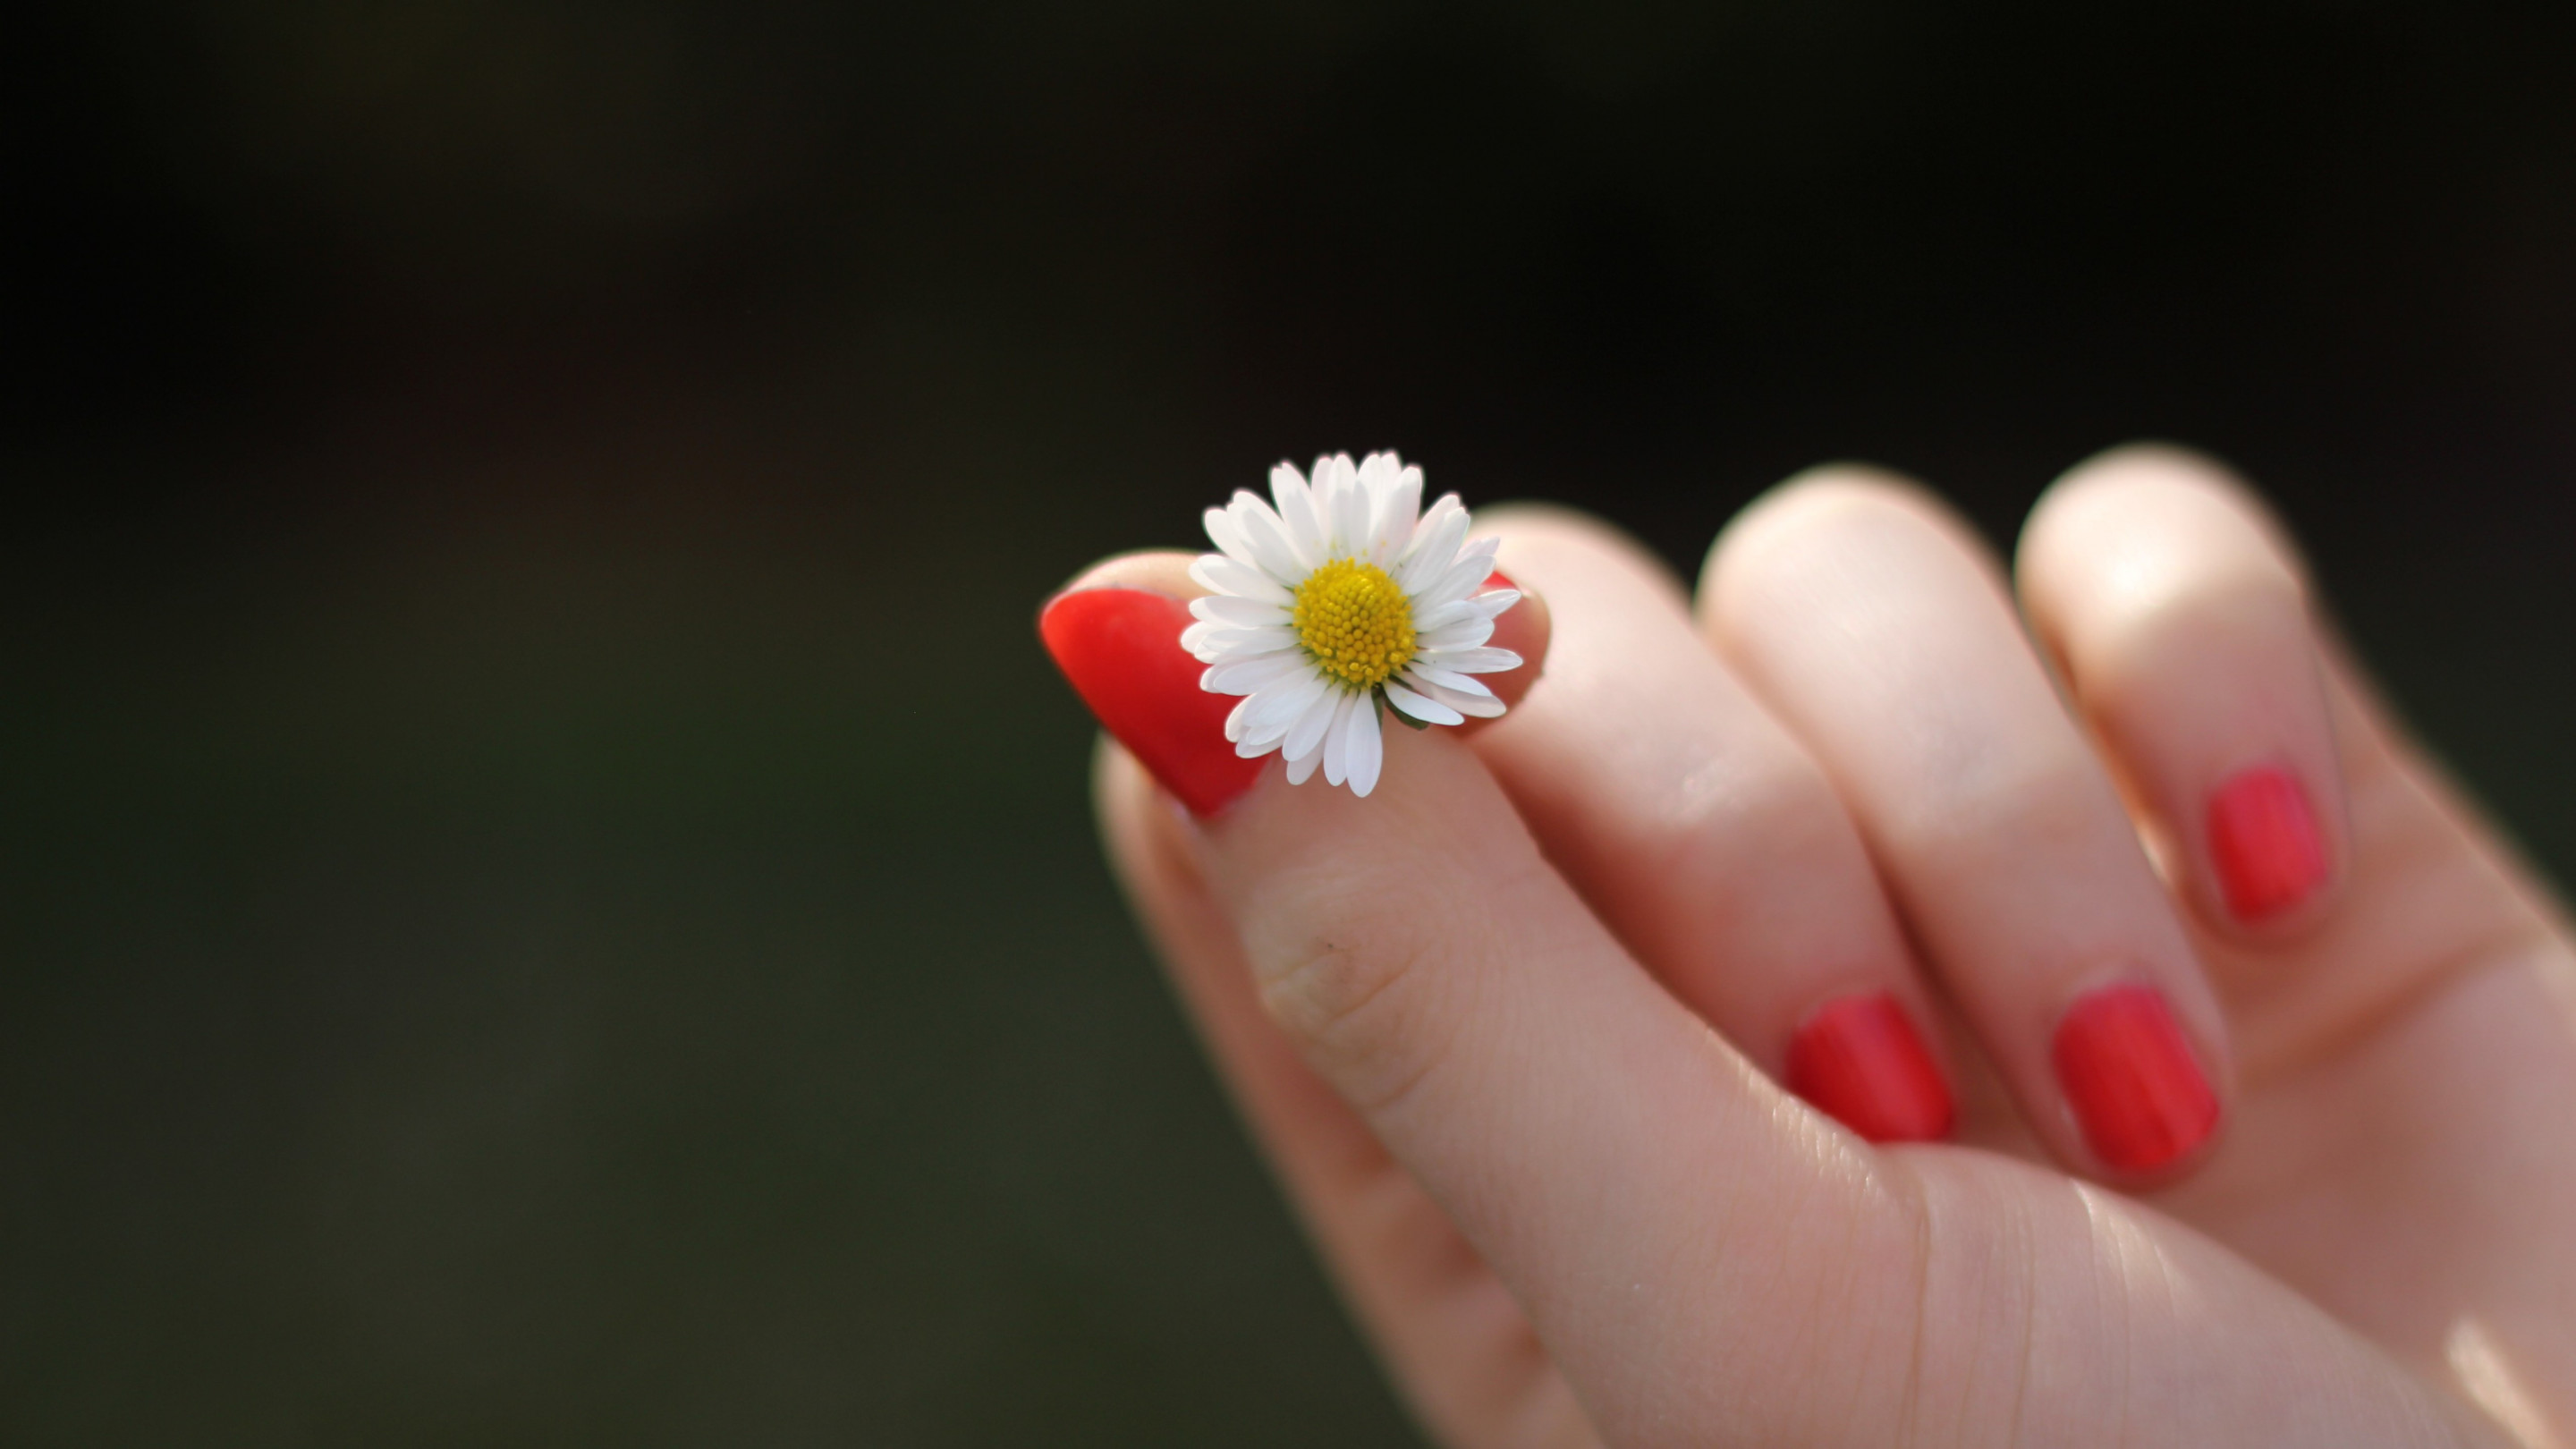 Girl with red nails and a daisy flower wallpaper 2880x1620